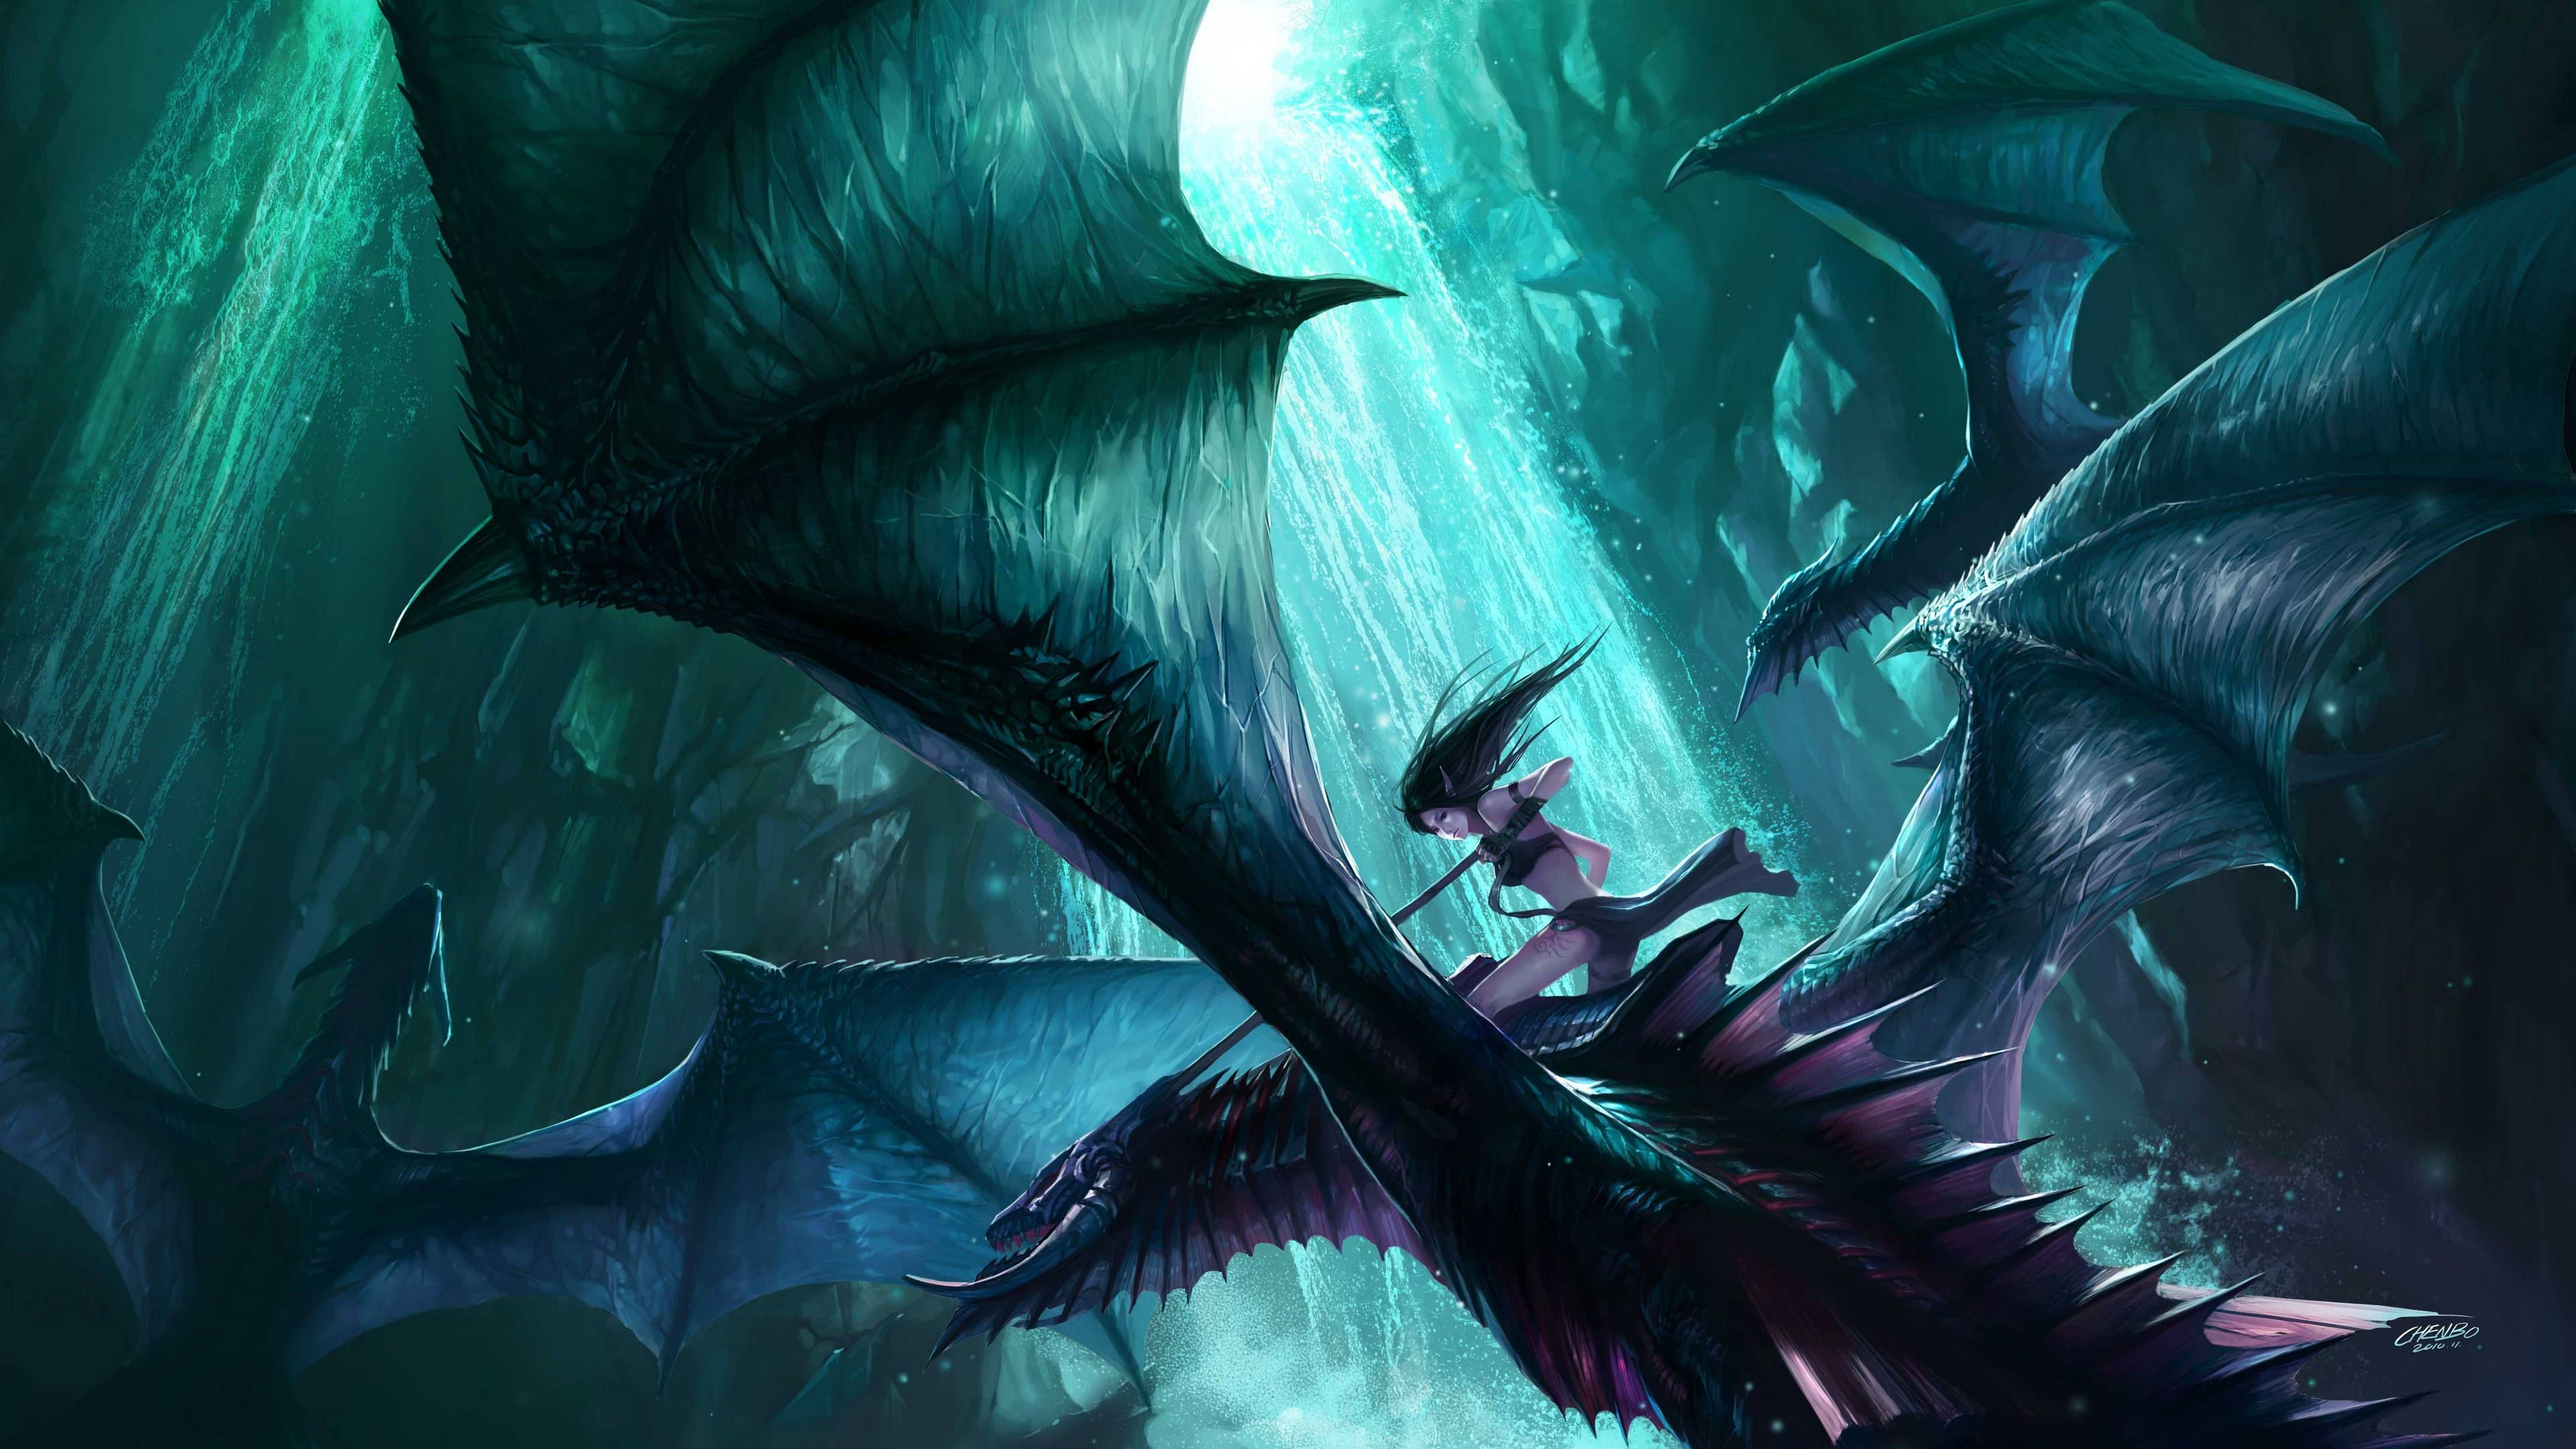 137 4k ultra hd dragon wallpapers | background images - wallpaper abyss